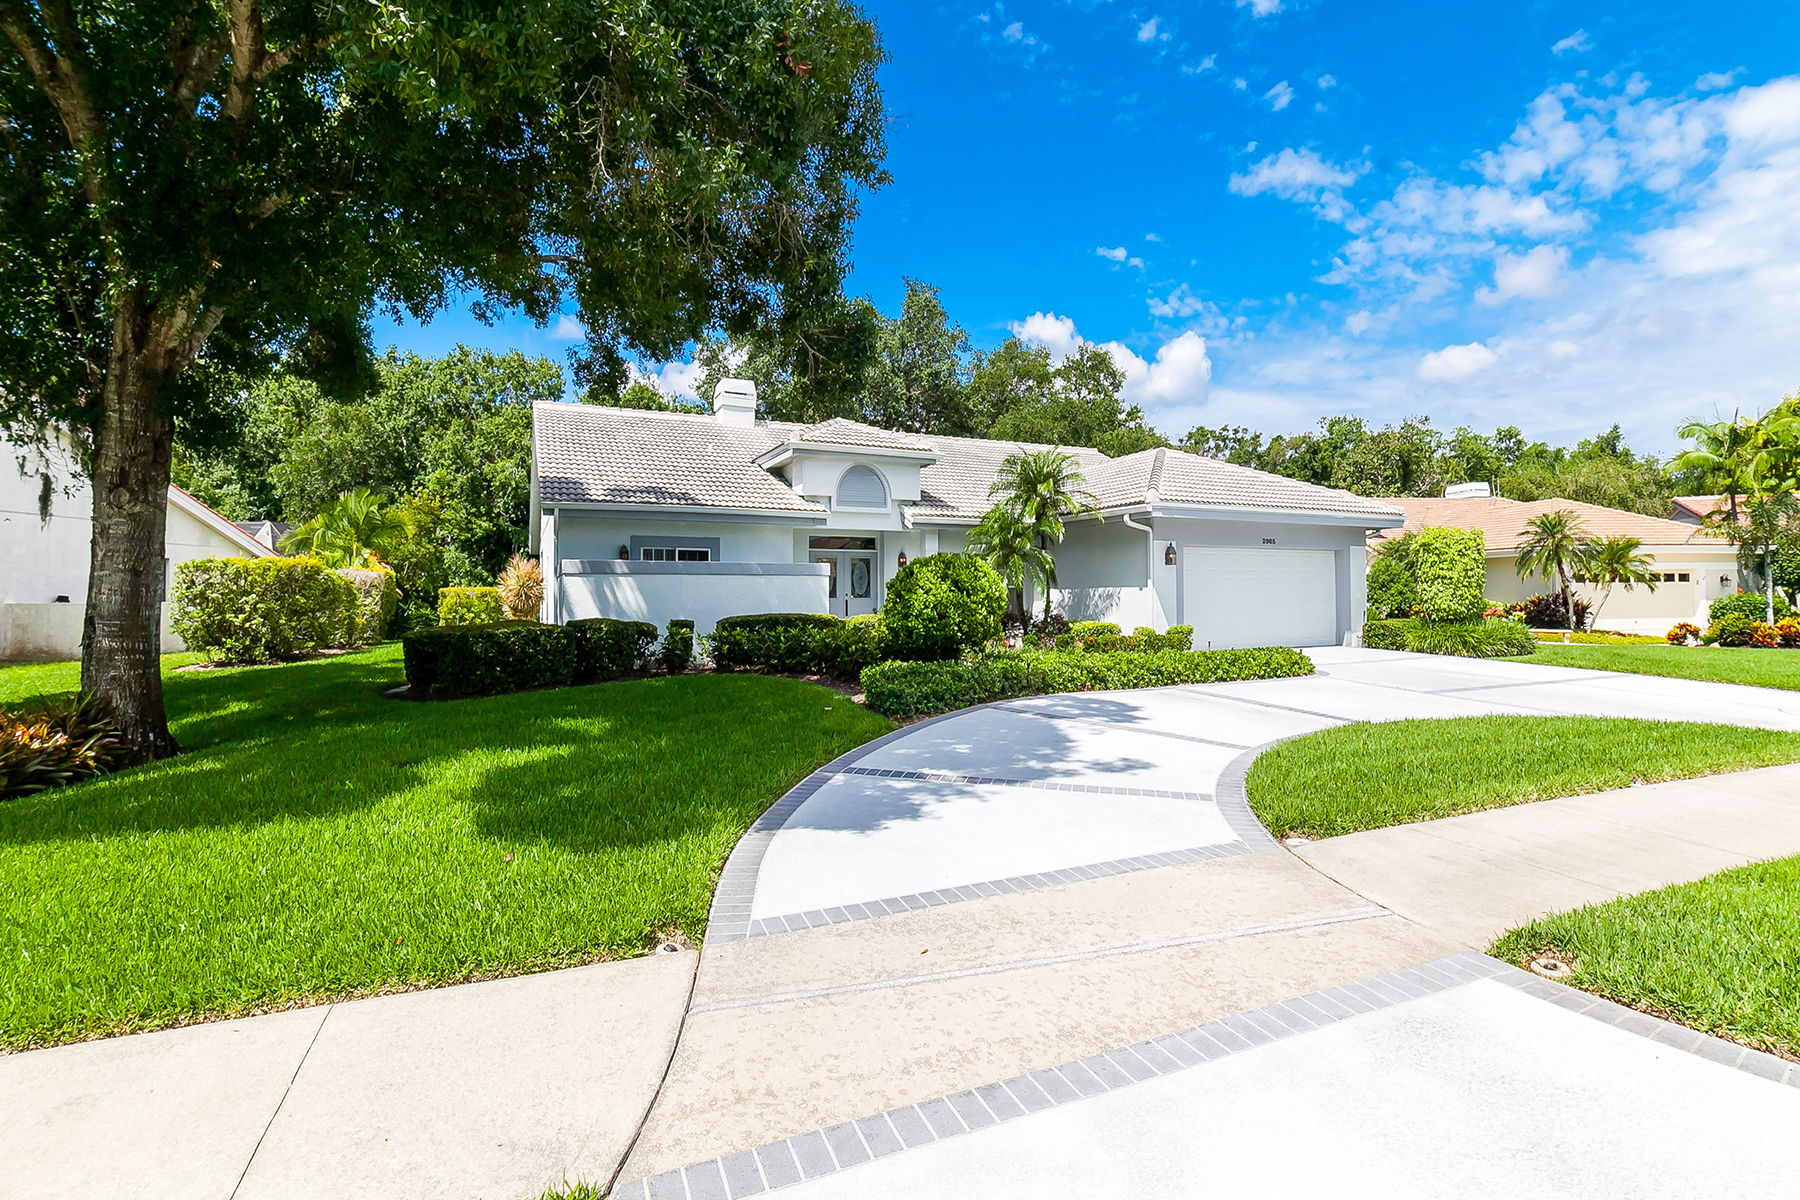 Single Family Home for Sale at THE MEADOWS 2965 Longleat Woods Sarasota, Florida 34235 United States